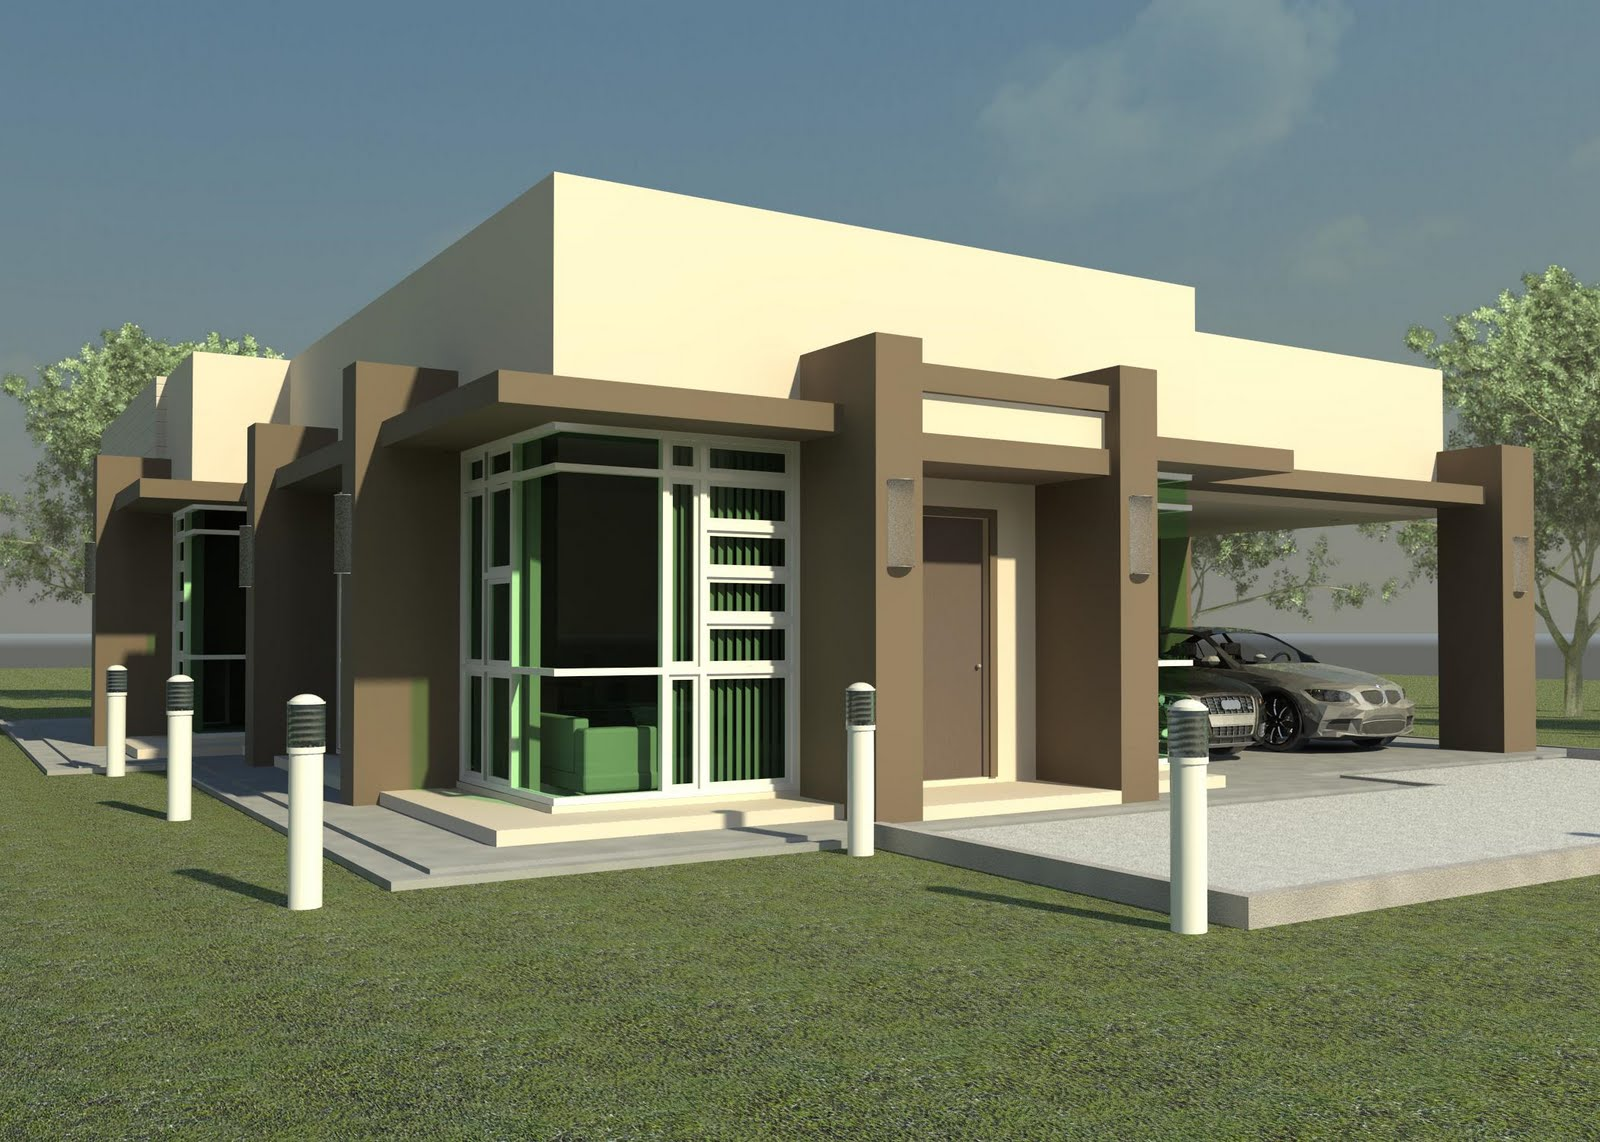 New home designs latest modern small homes designs exterior for Contemporary home designs india